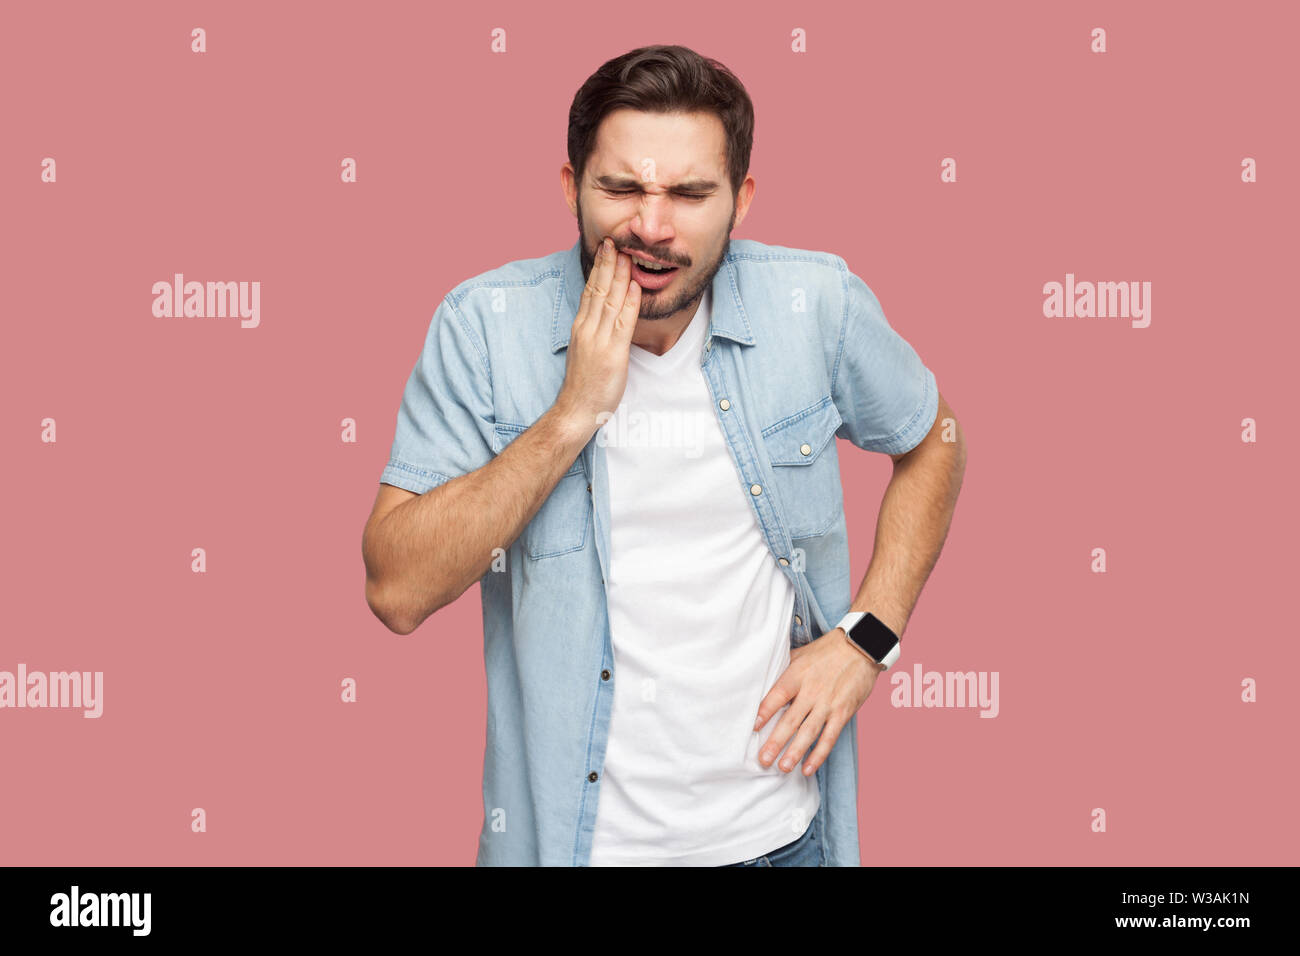 toothache or pain. Portrait of sad sick bearded young man in blue casual style shirt standing and touching his chik because feeling pain on tooth. ind Stock Photo